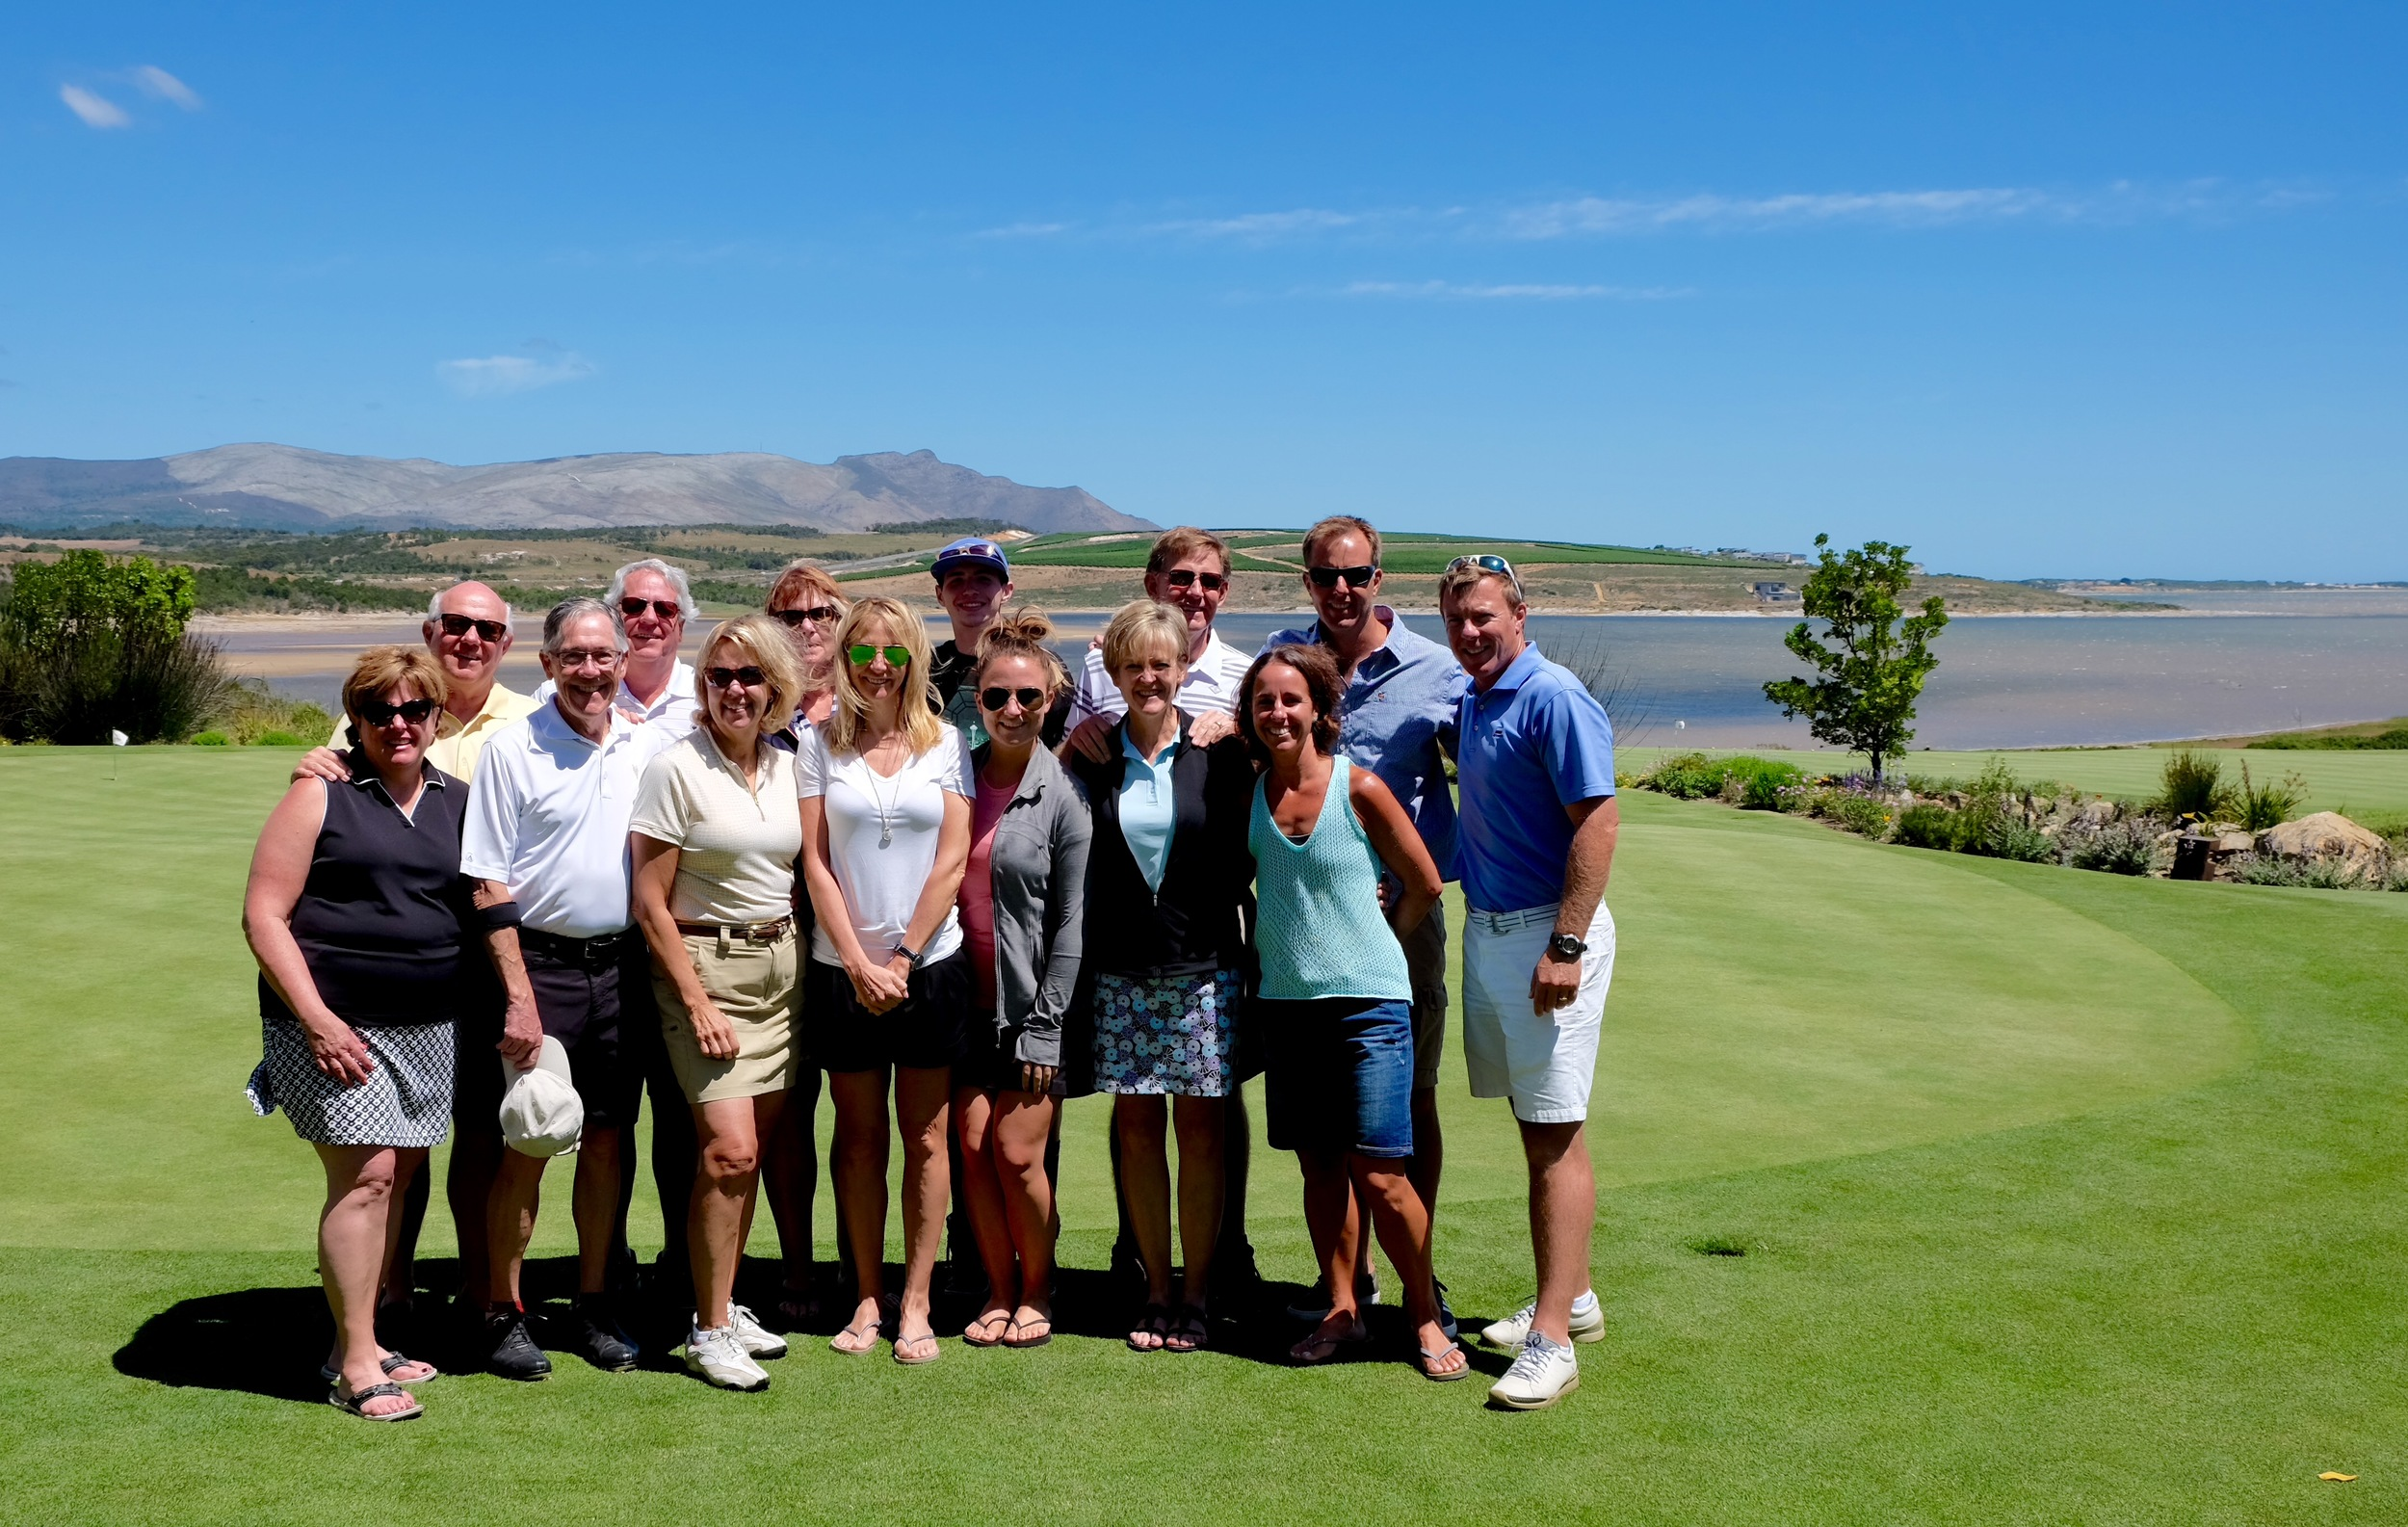 Our Group at Arabella Golf Club